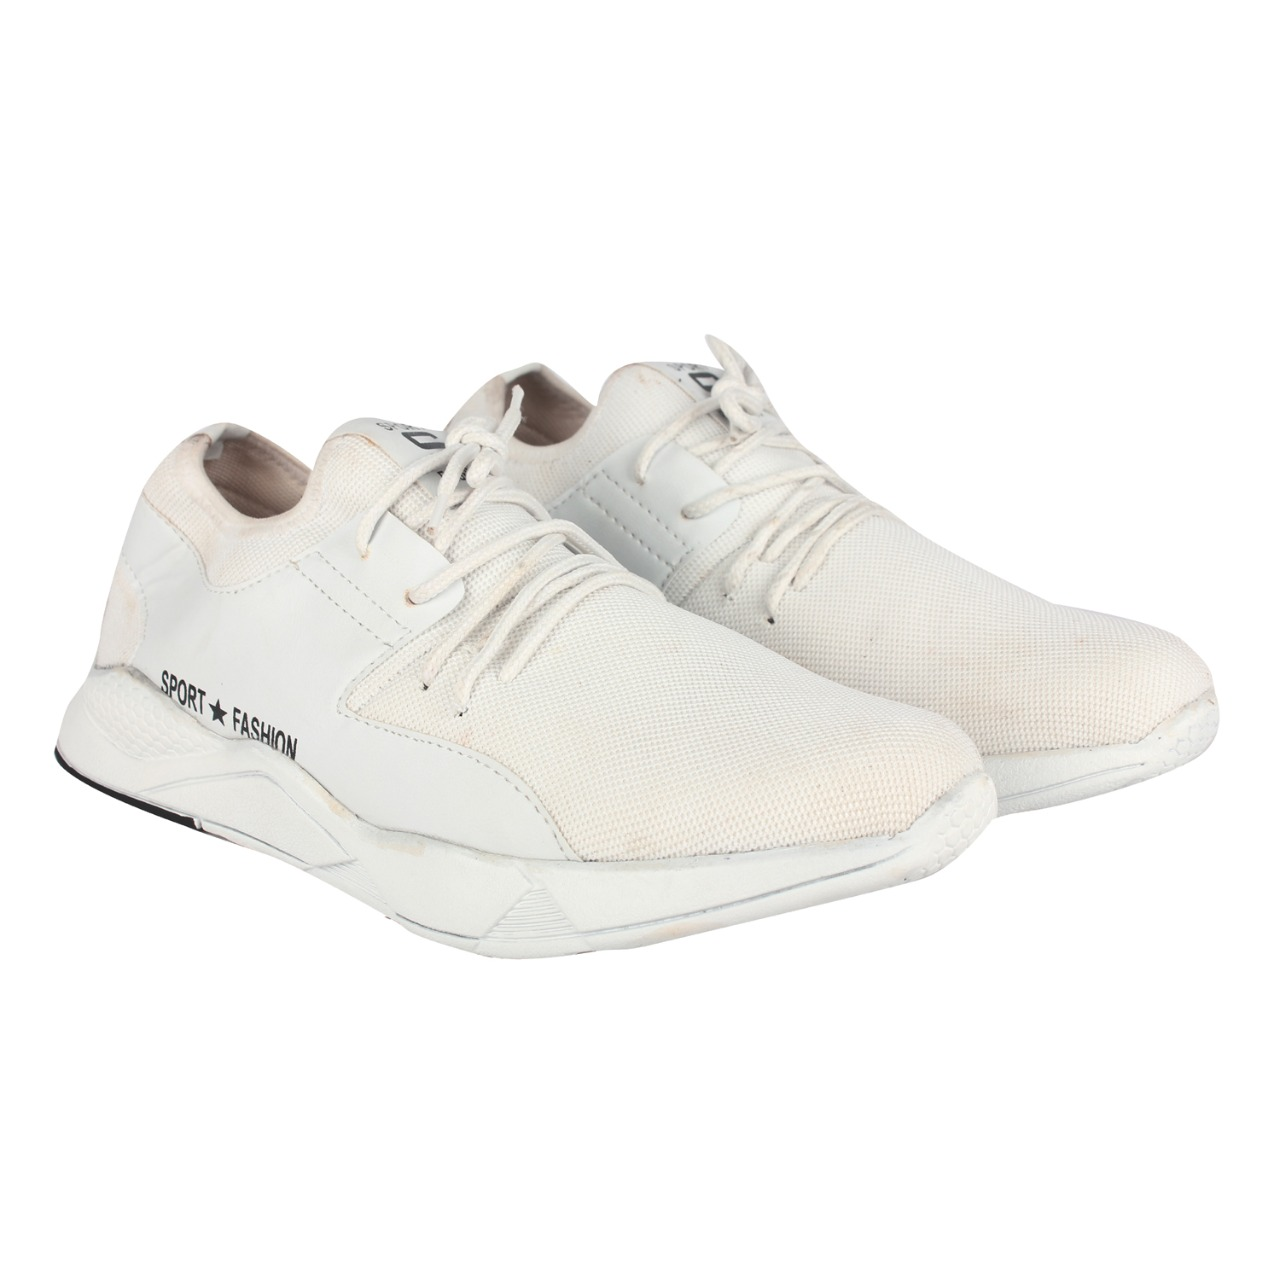 RNT   RNT Fashionable Sports Shoes for Men